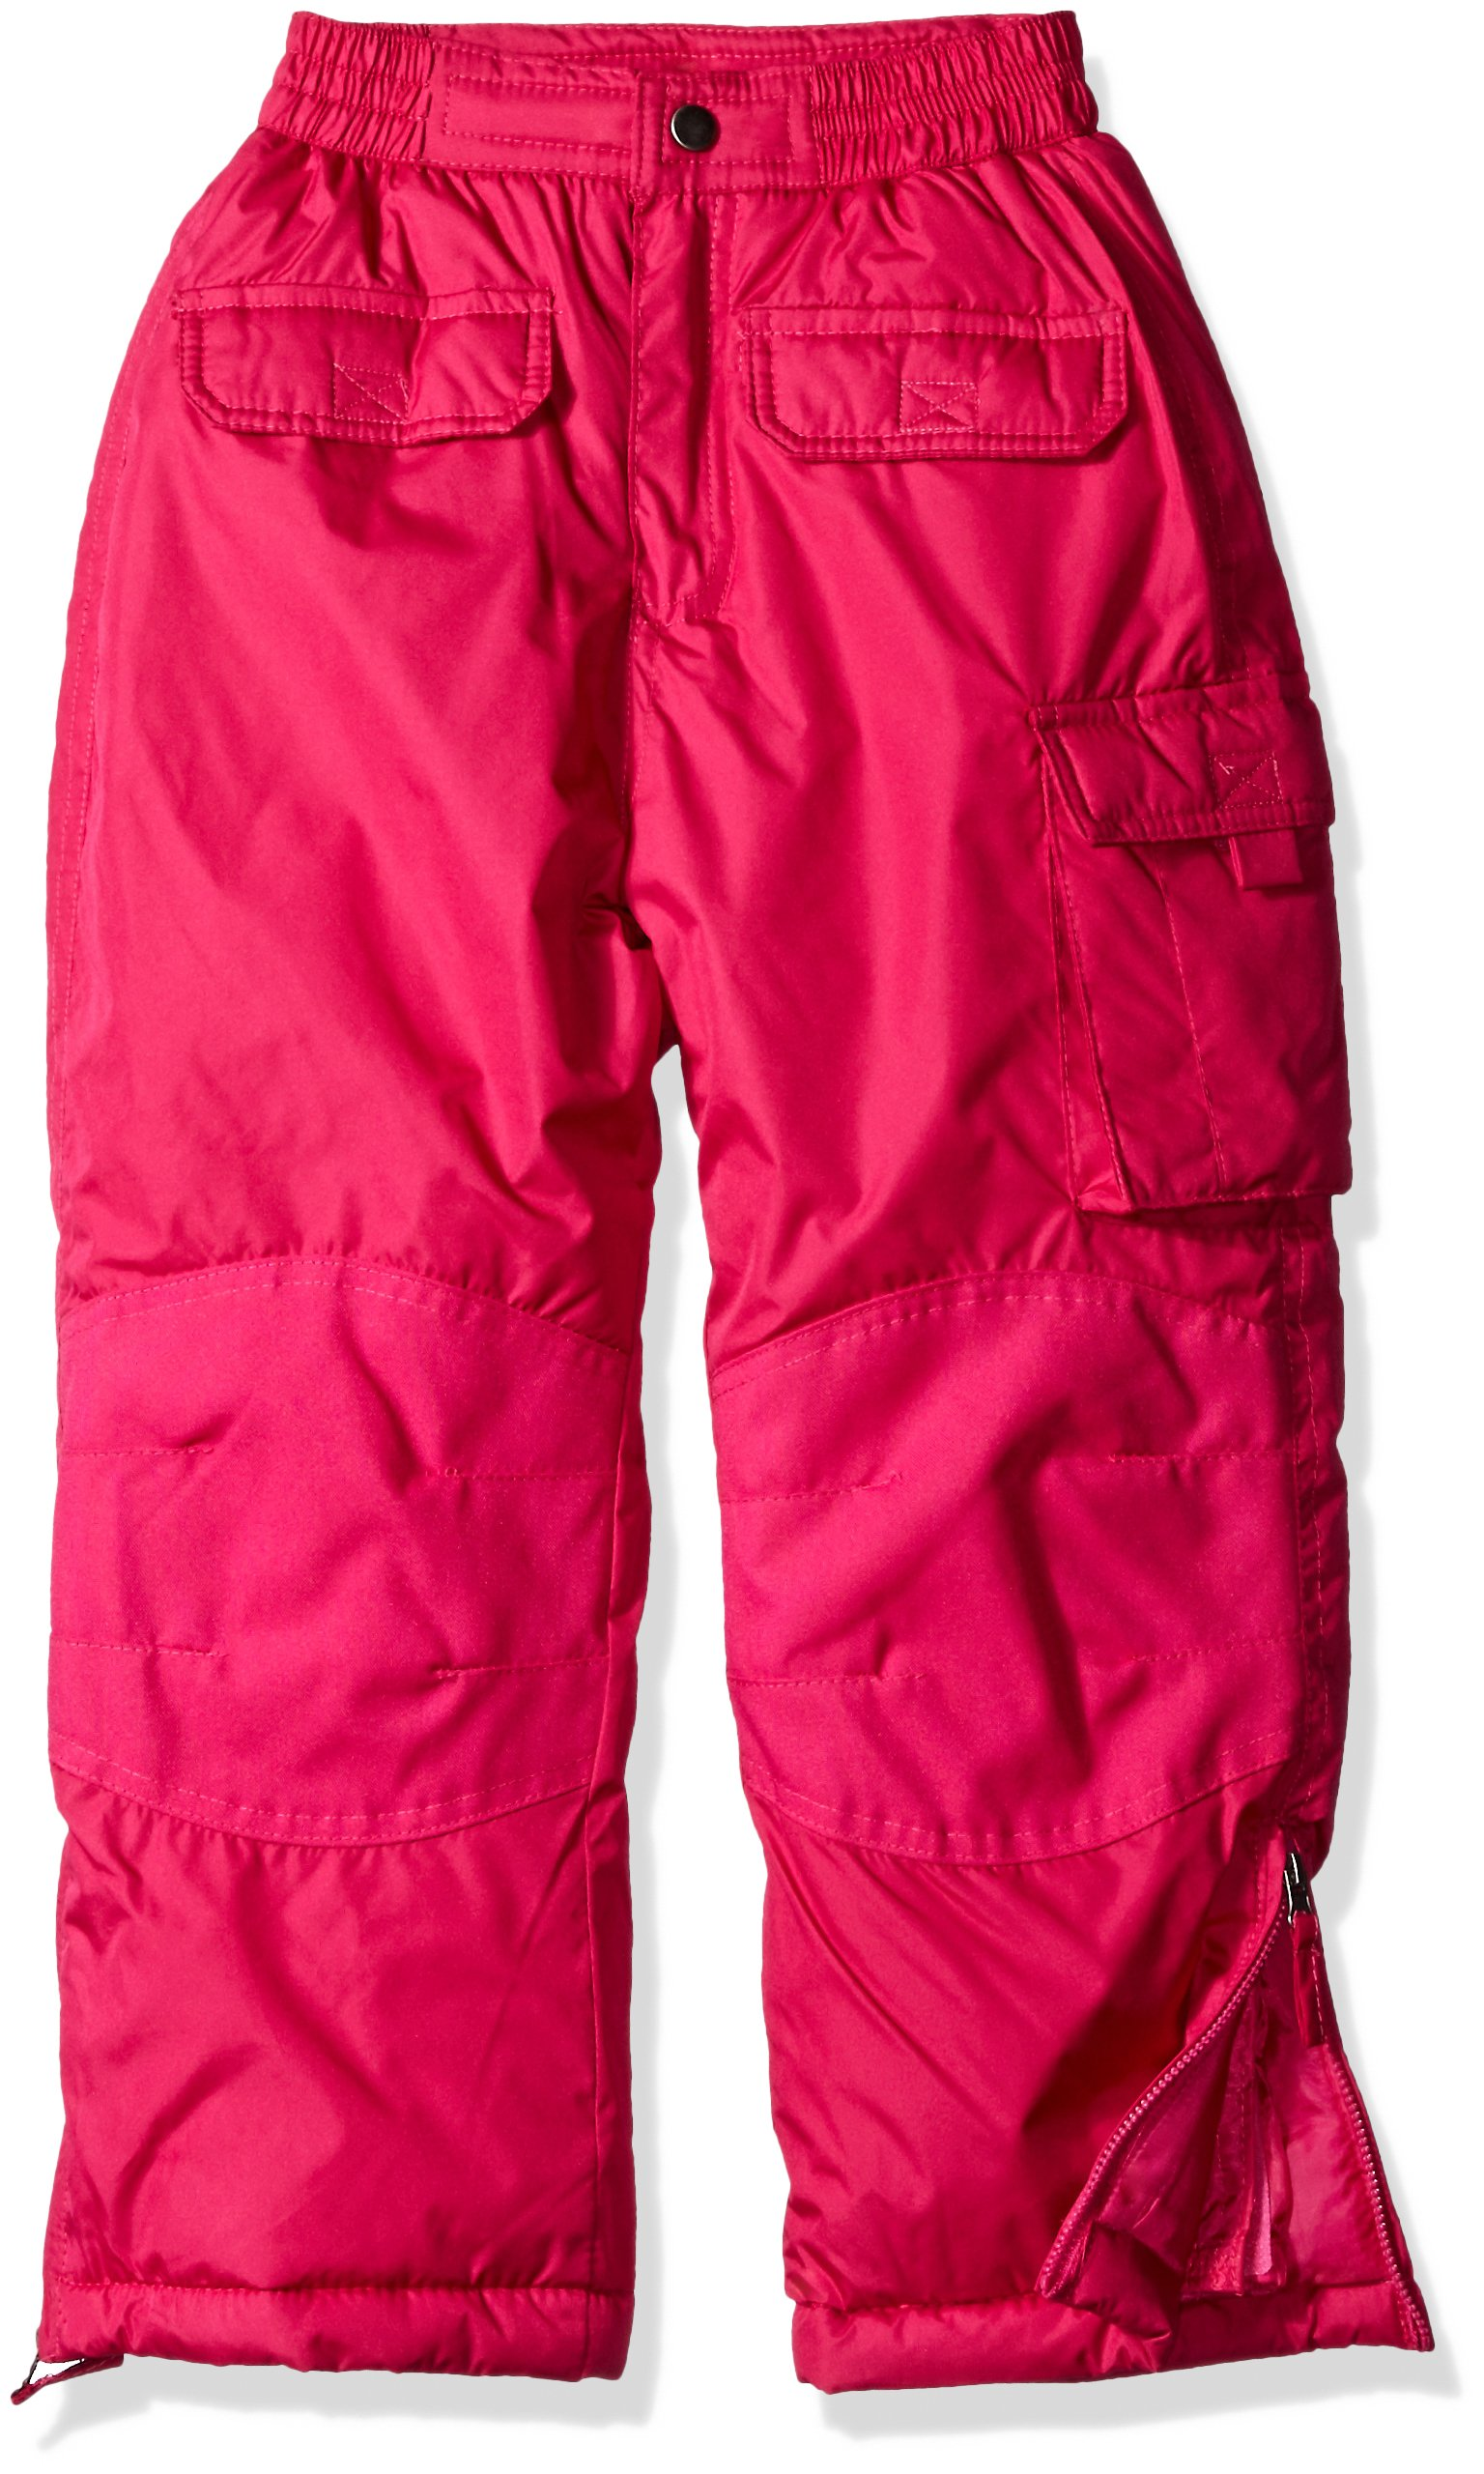 iXtreme Little Girls' Snowpant, Berry, 4